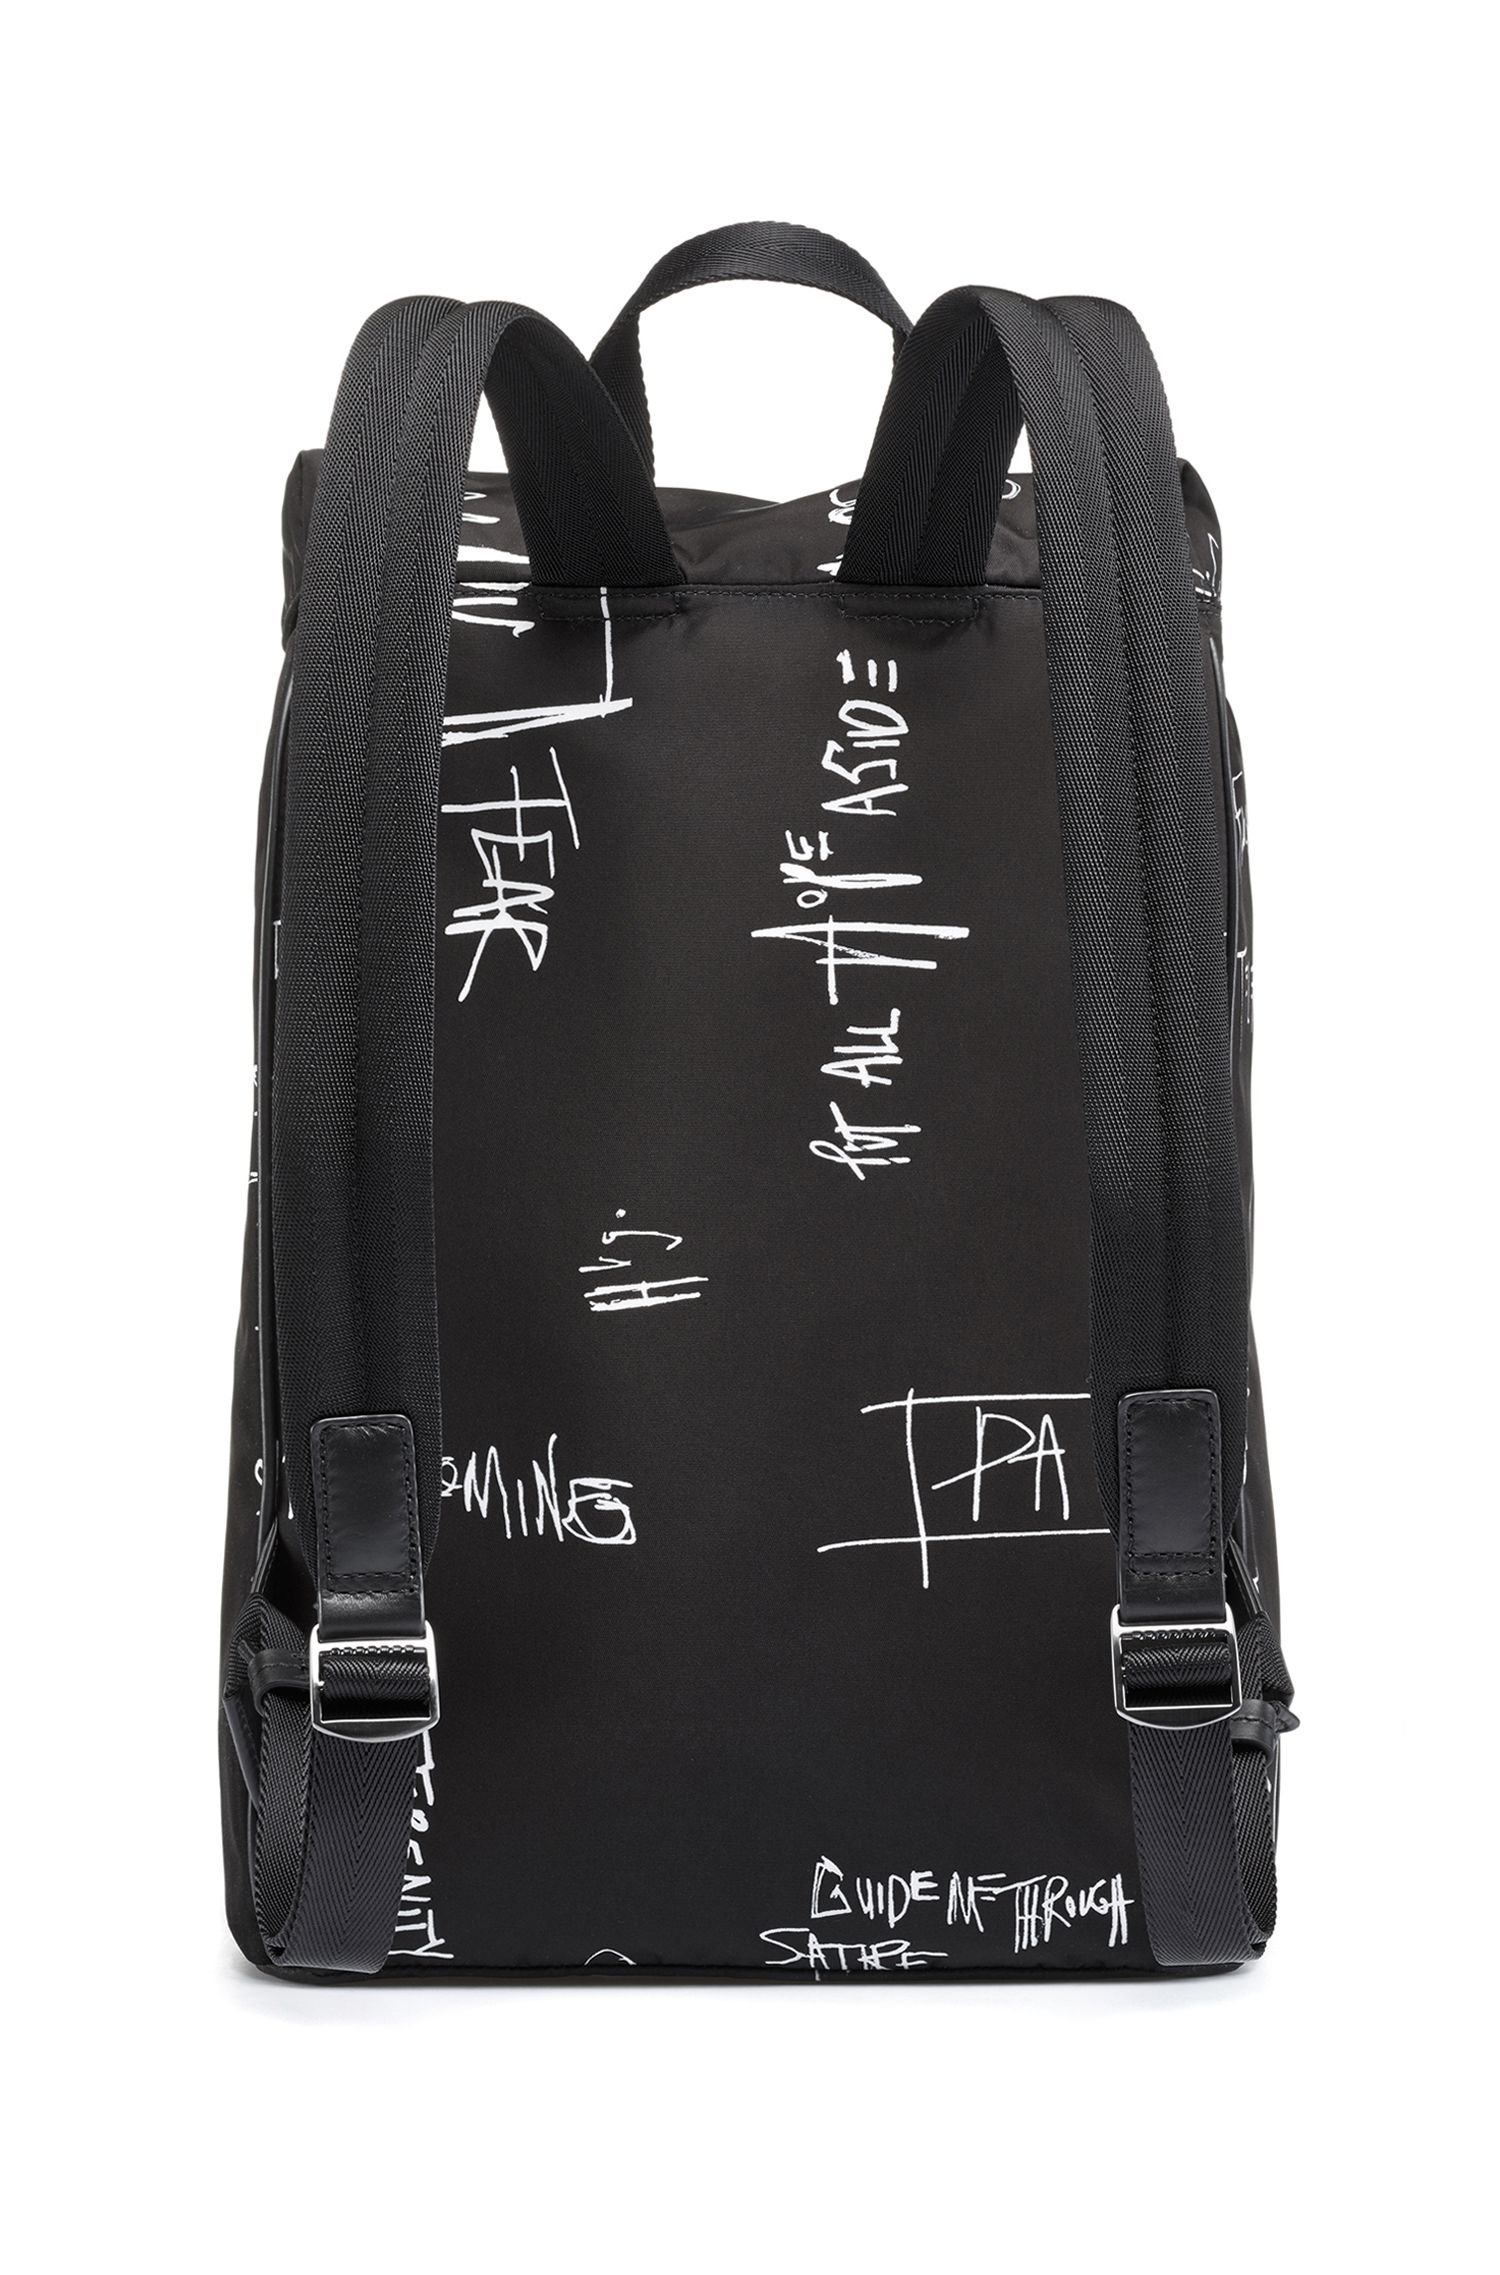 Graffiti-print backpack in nylon gabardine with laptop pocket